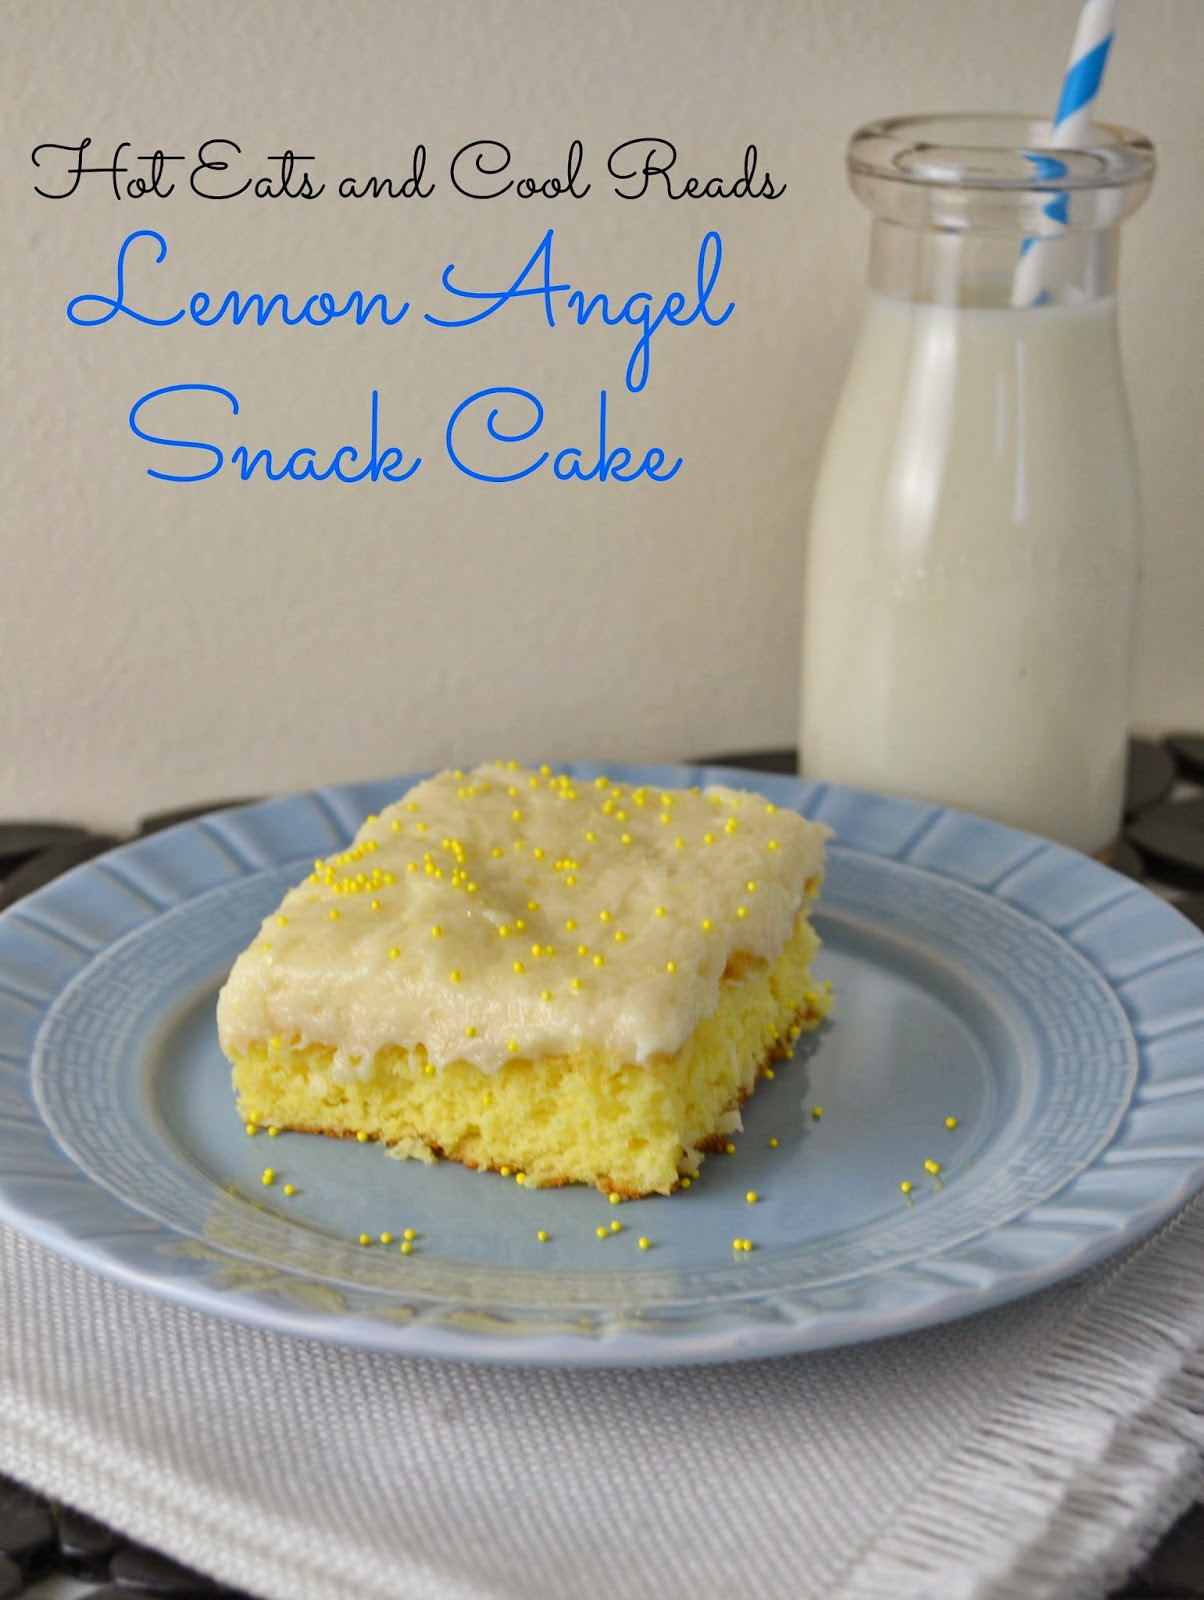 Lemon Angel Snack Cake with Cream Cheese Frosting Recipe